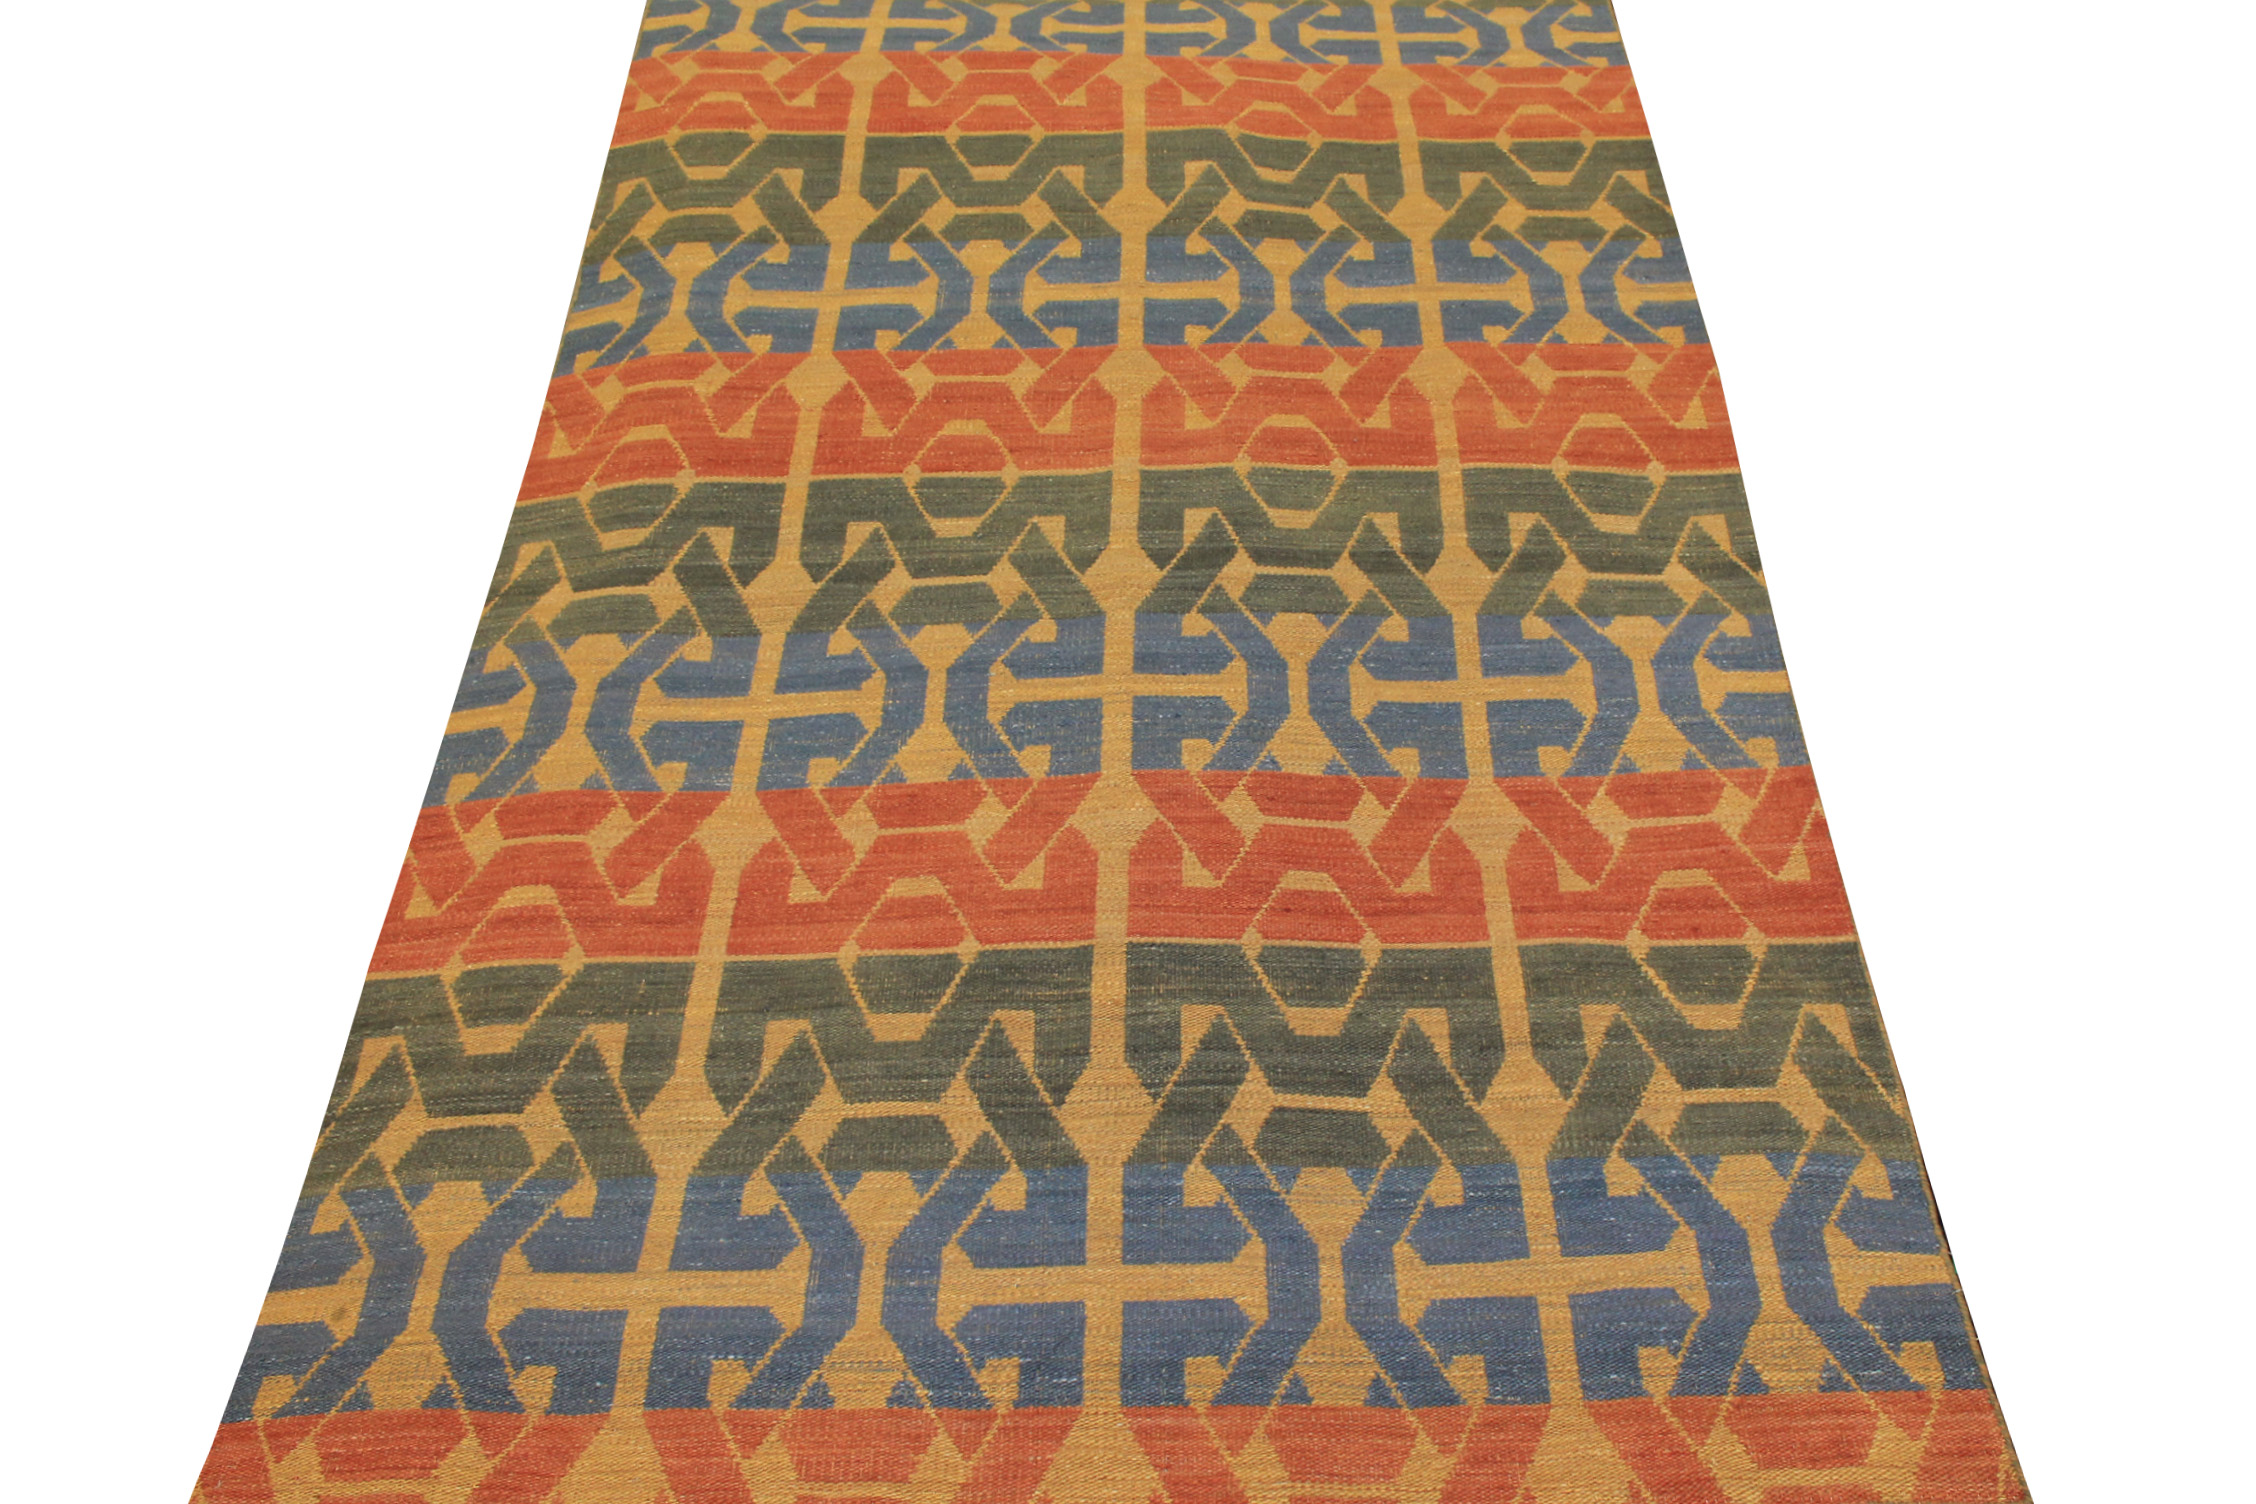 6x9 Flat Weave Hand Knotted Wool Area Rug - MR21026